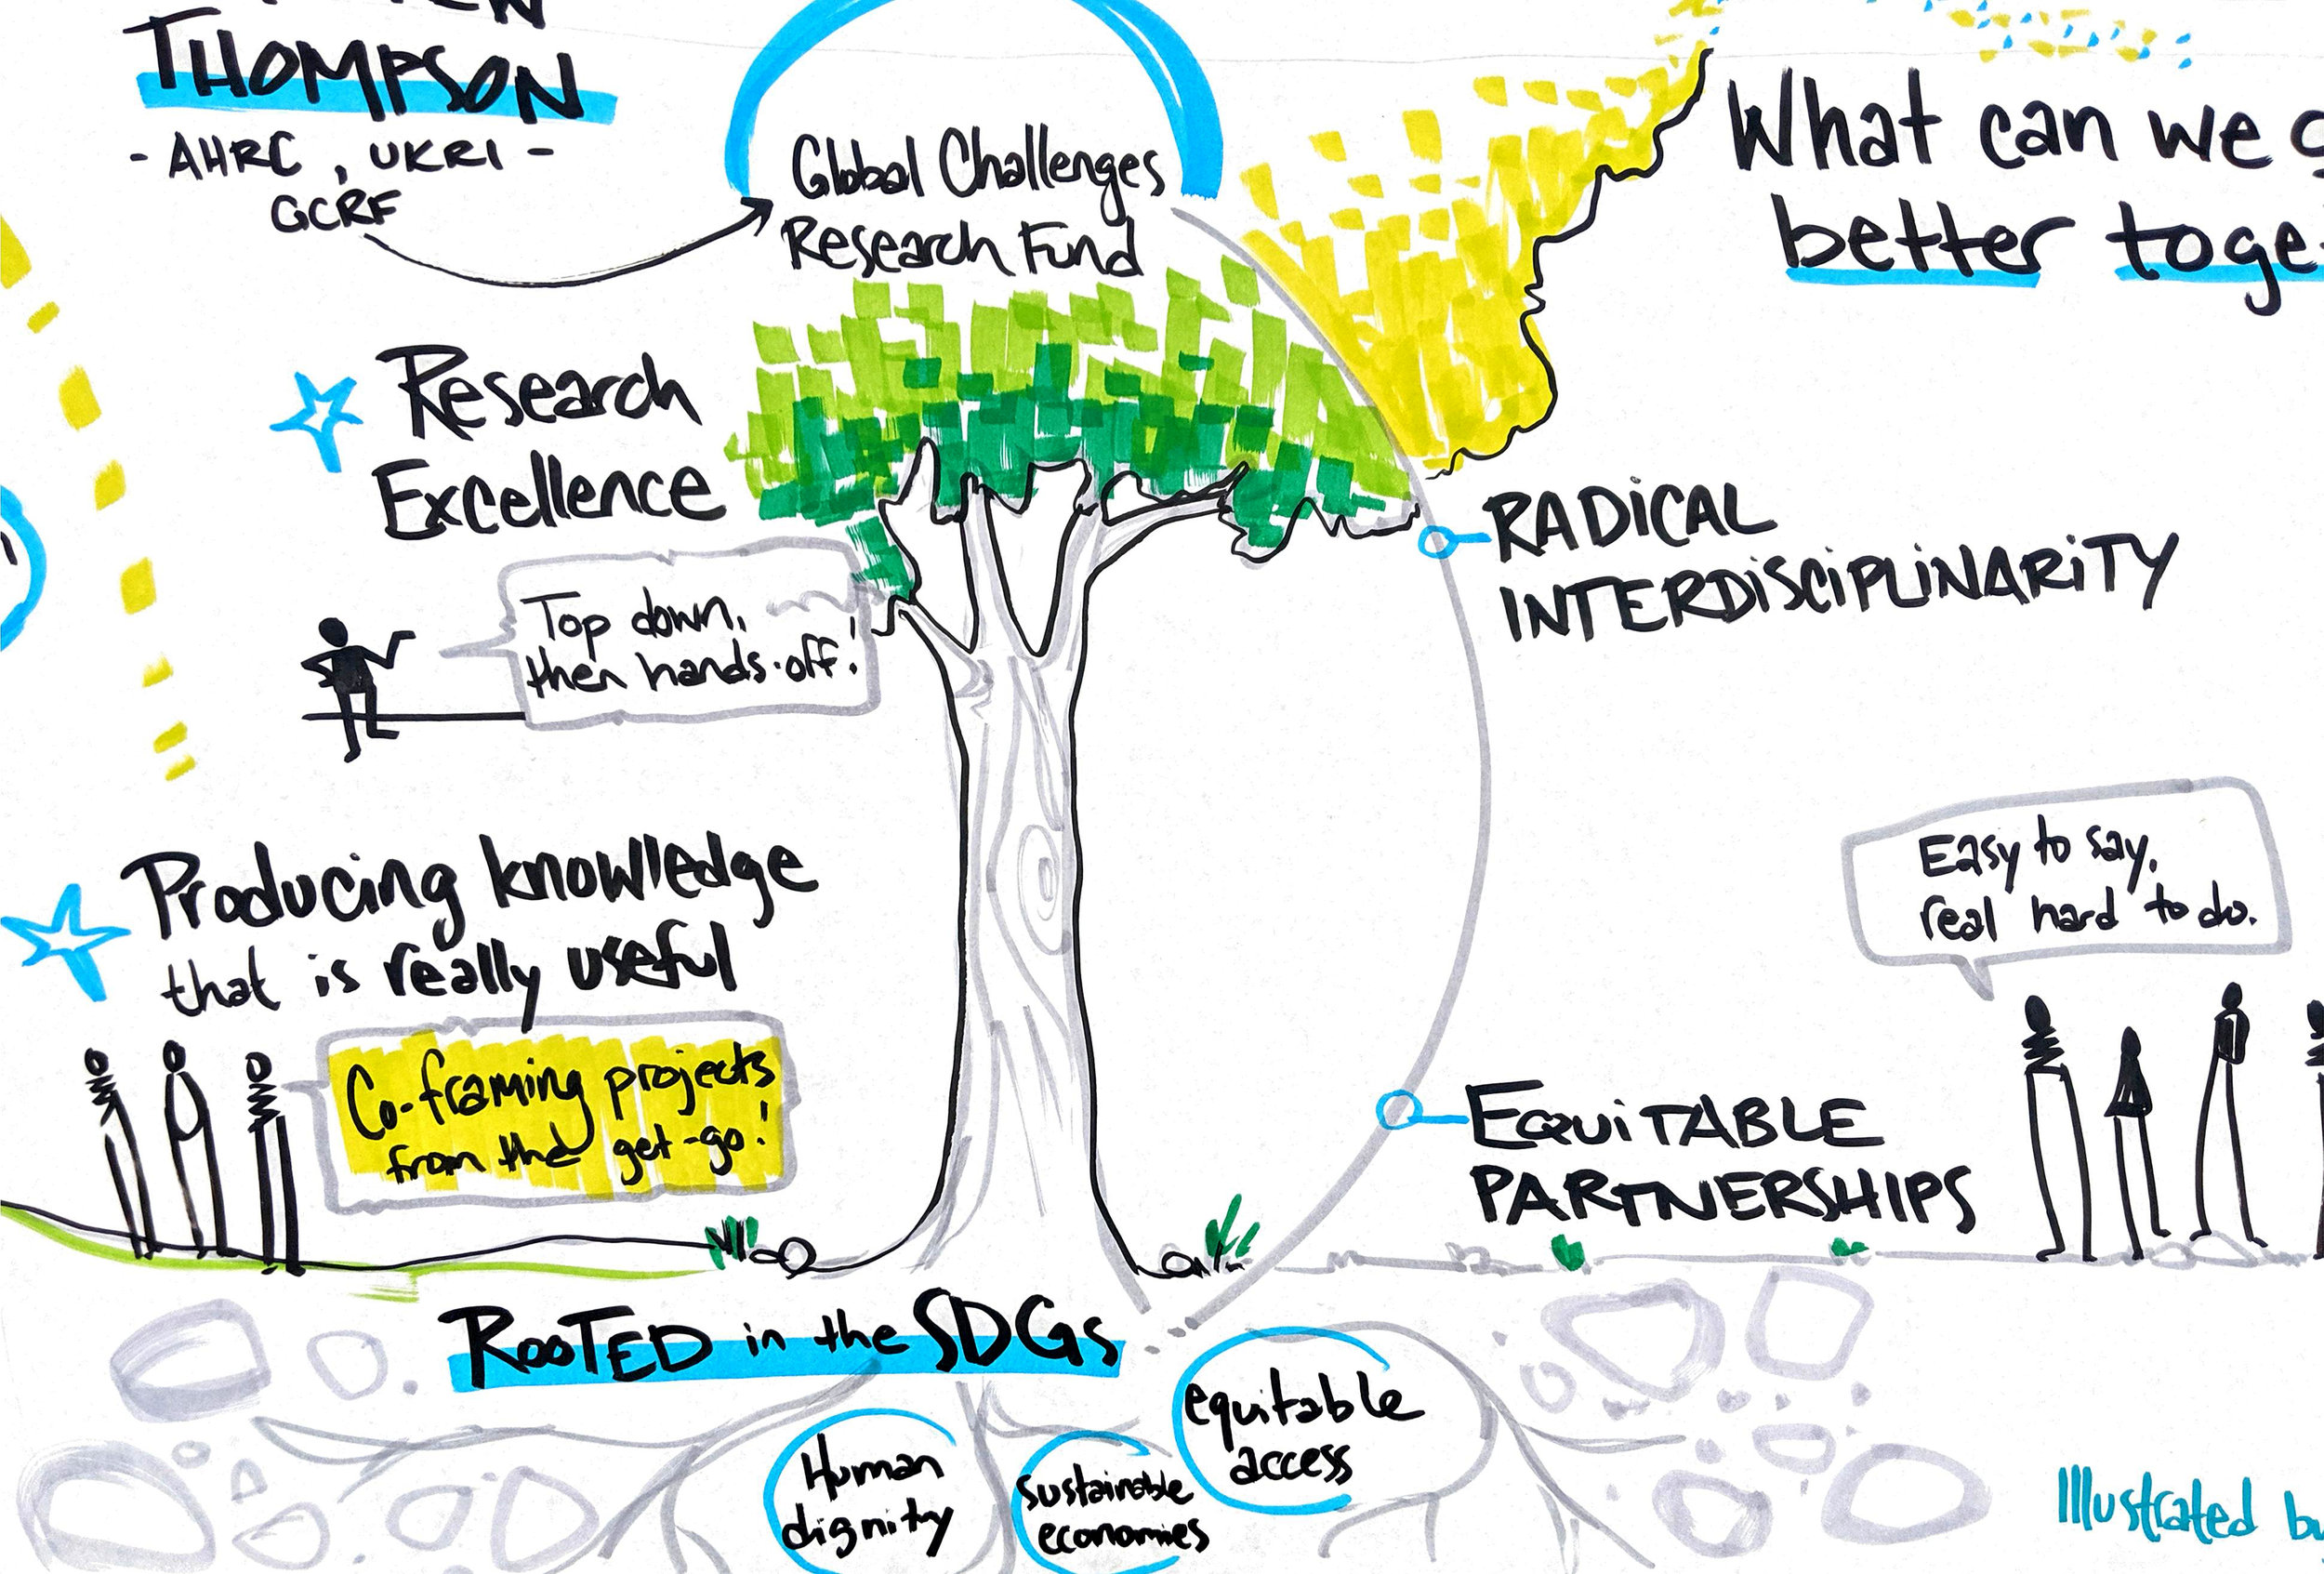 global sustainability funders forum conversketch graphic recording